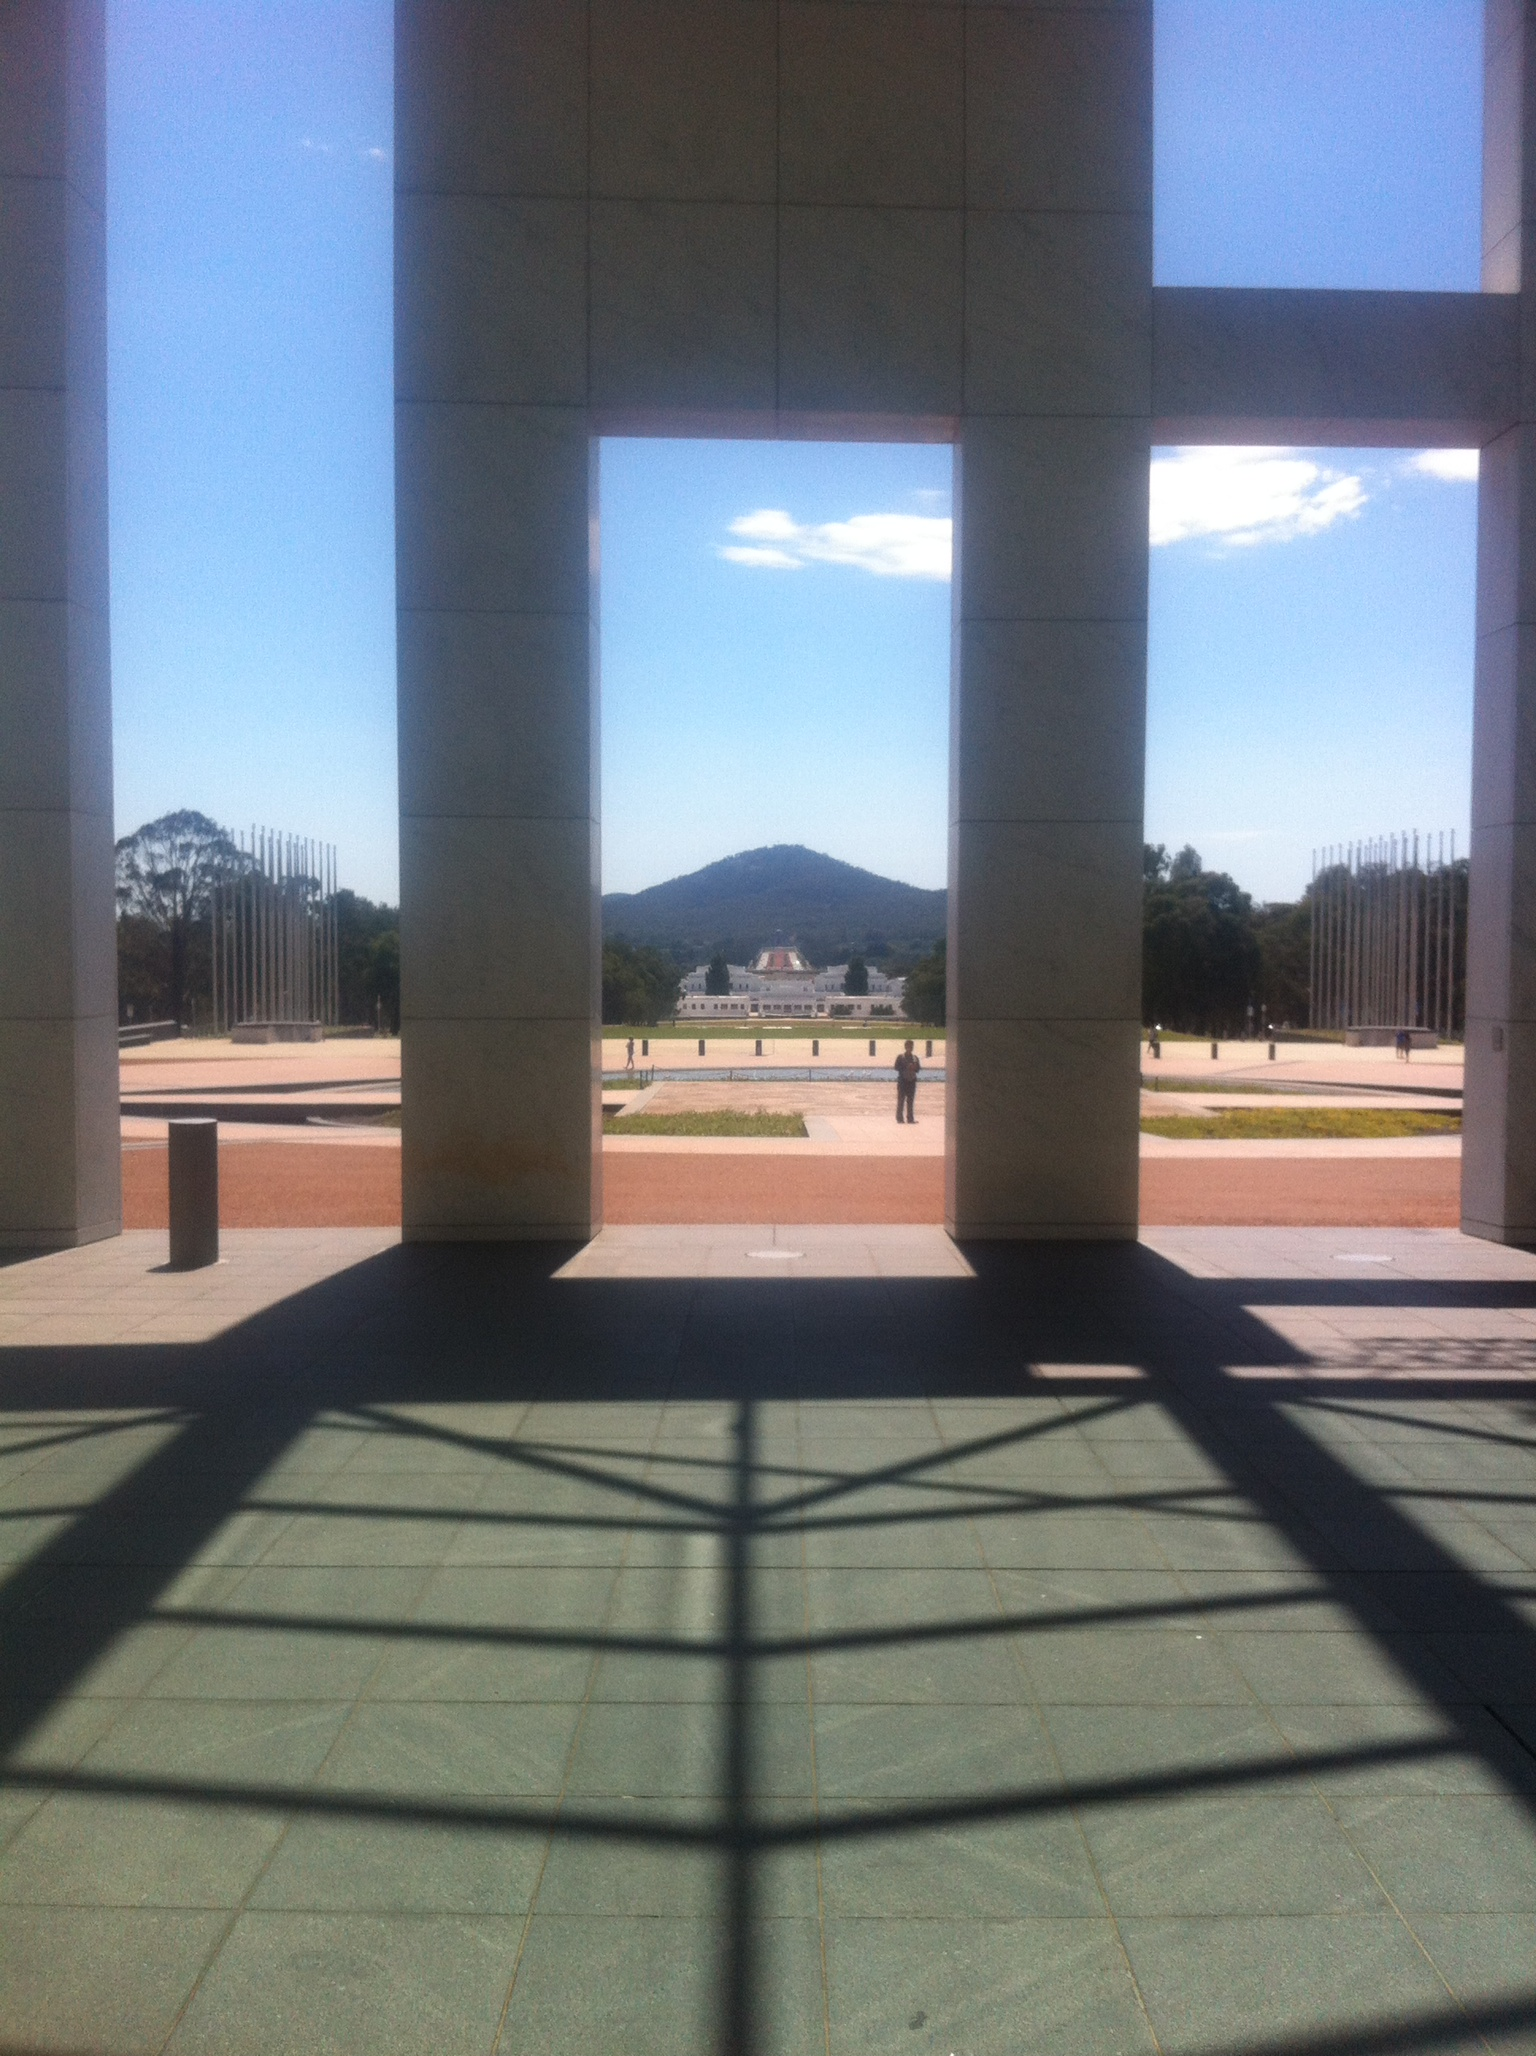 View towards Federation Mall from front of Parliament House